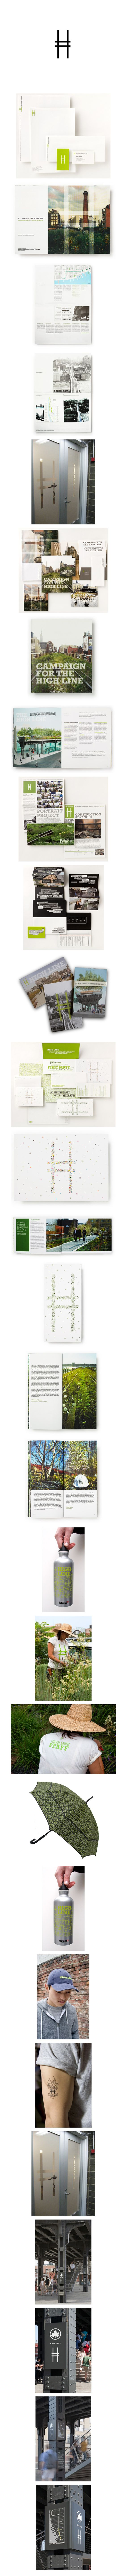 The High Line Identity - one of my must sees next Christmas :)